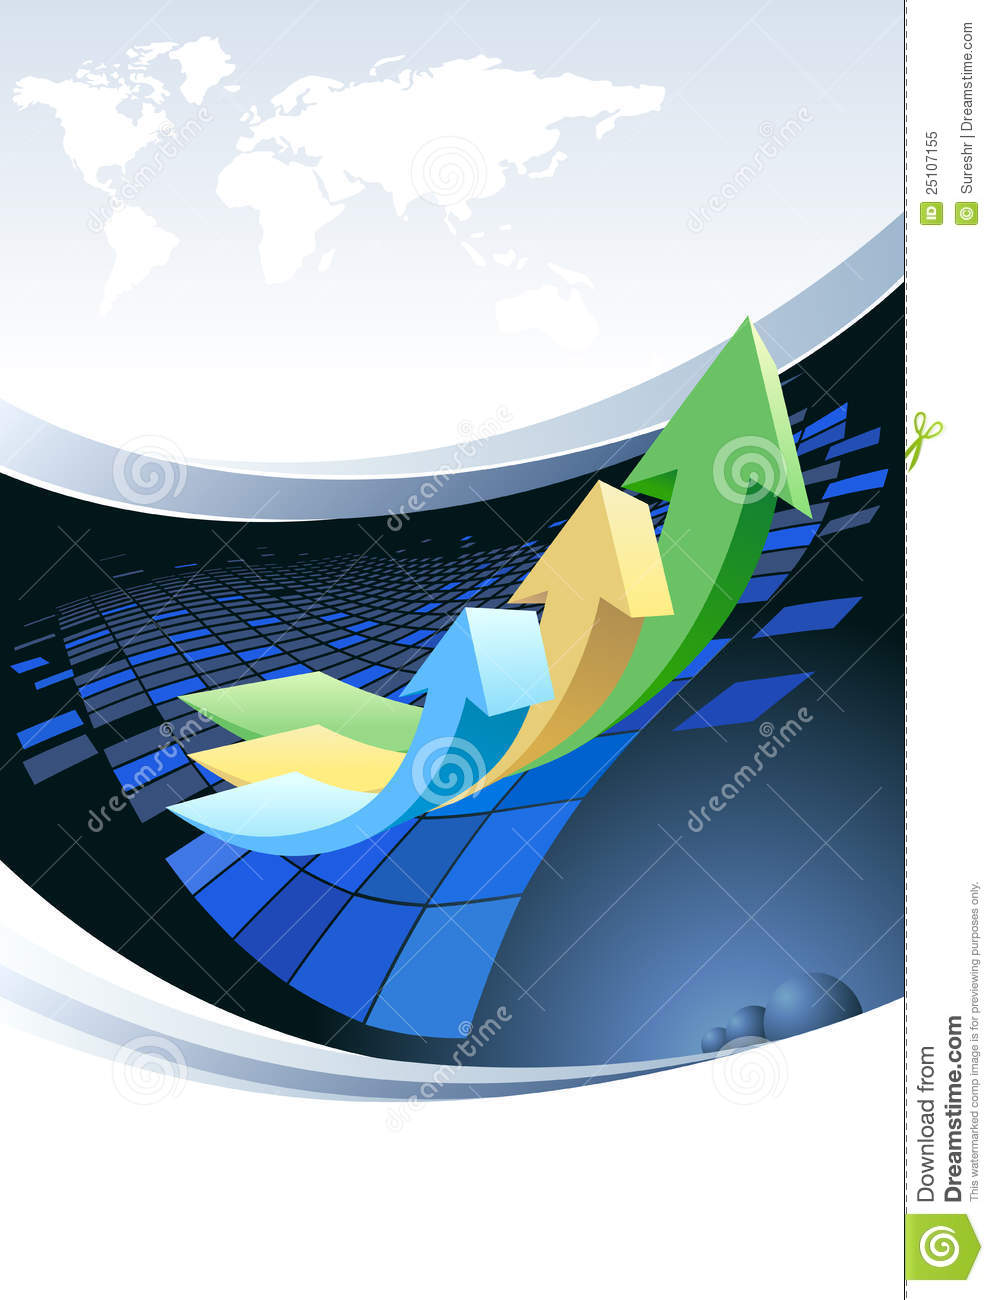 Global business brochure design royalty free stock photo for Global design company